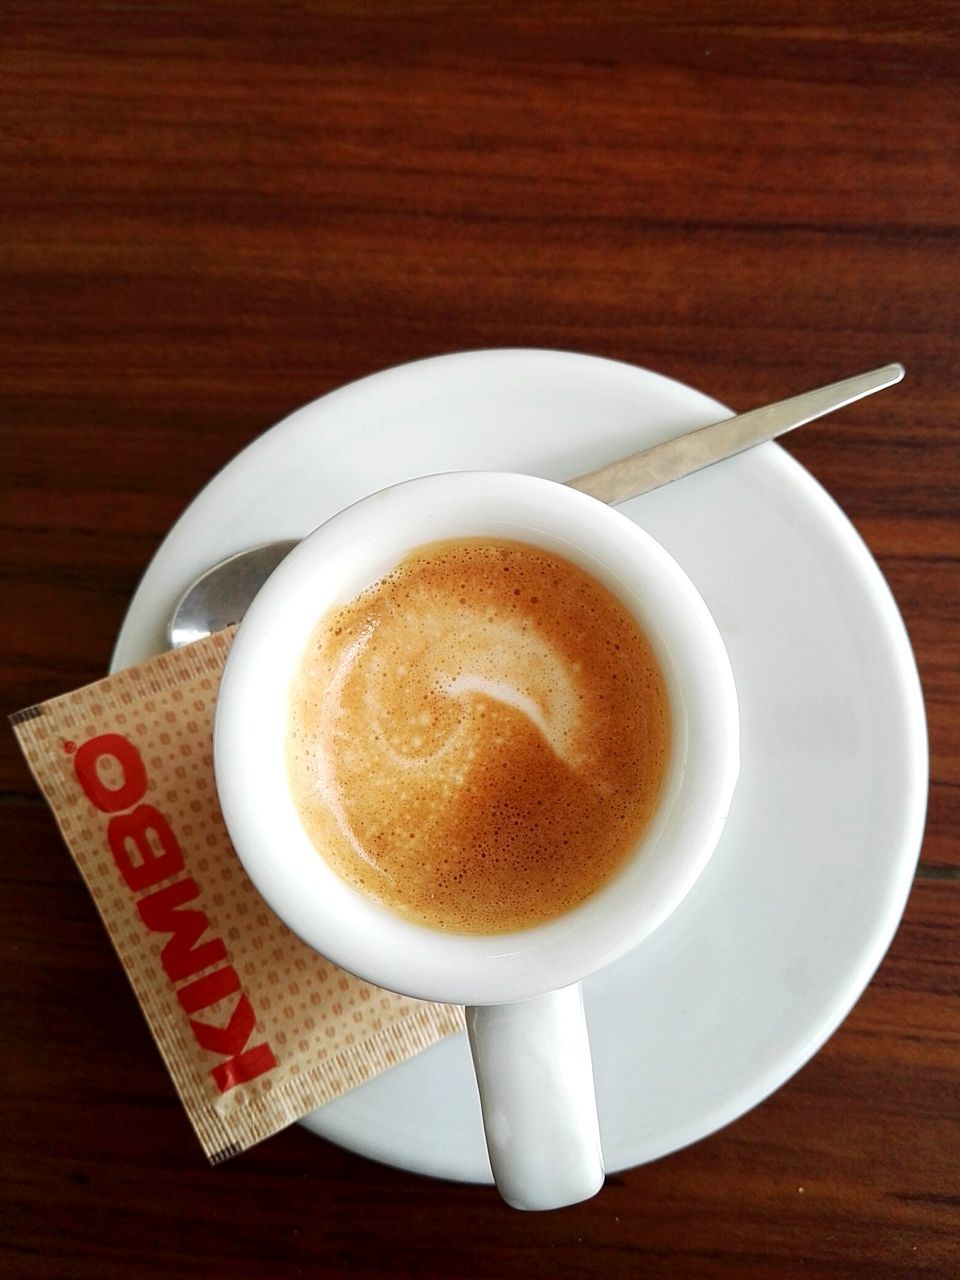 coffee cup, coffee - drink, food and drink, drink, table, refreshment, high angle view, saucer, frothy drink, indoors, freshness, directly above, no people, wood - material, close-up, froth art, food, cappuccino, day